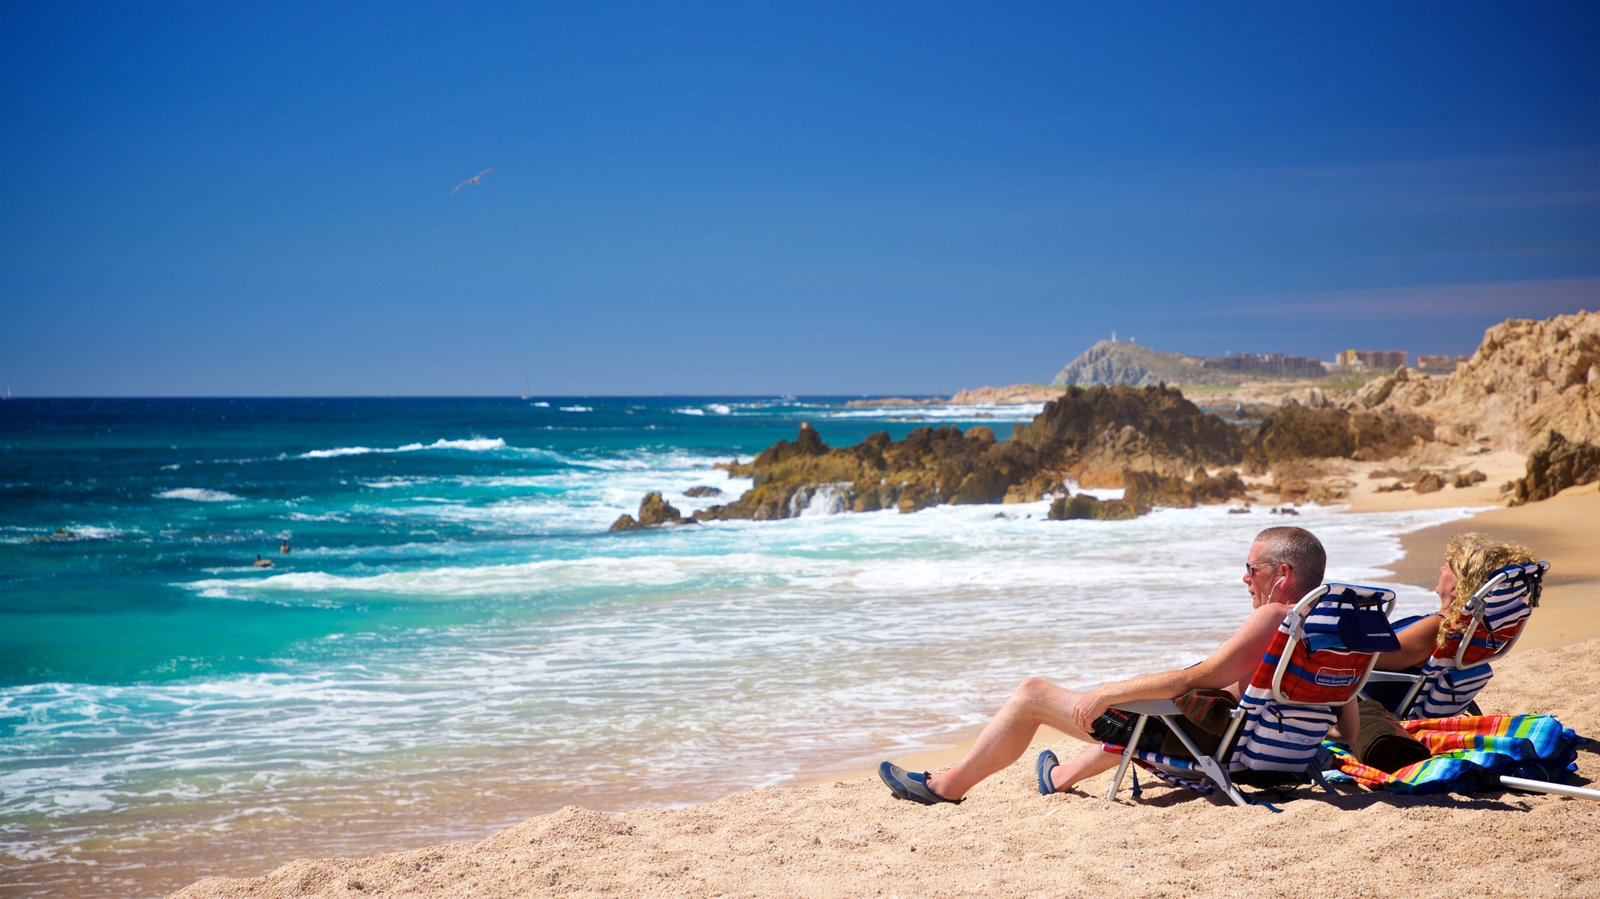 Playa Las Viudas which includes general coastal views and a beach as well as a couple